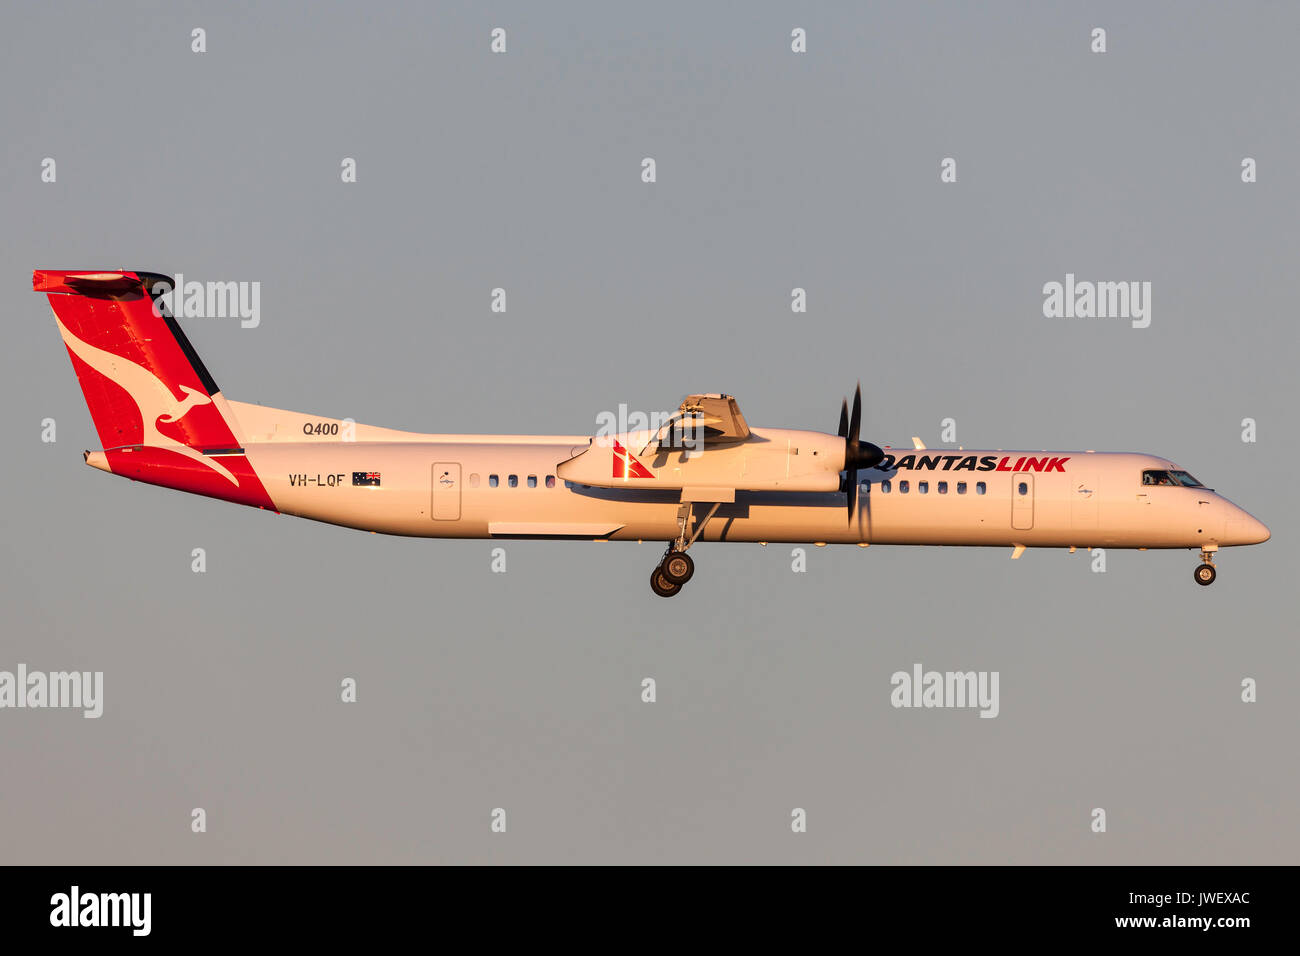 QantasLink de Havilland Canada DHC-8-402Q (Dash 8 Q400) VH-LQF on approach to land at Melbourne International Airport. - Stock Image